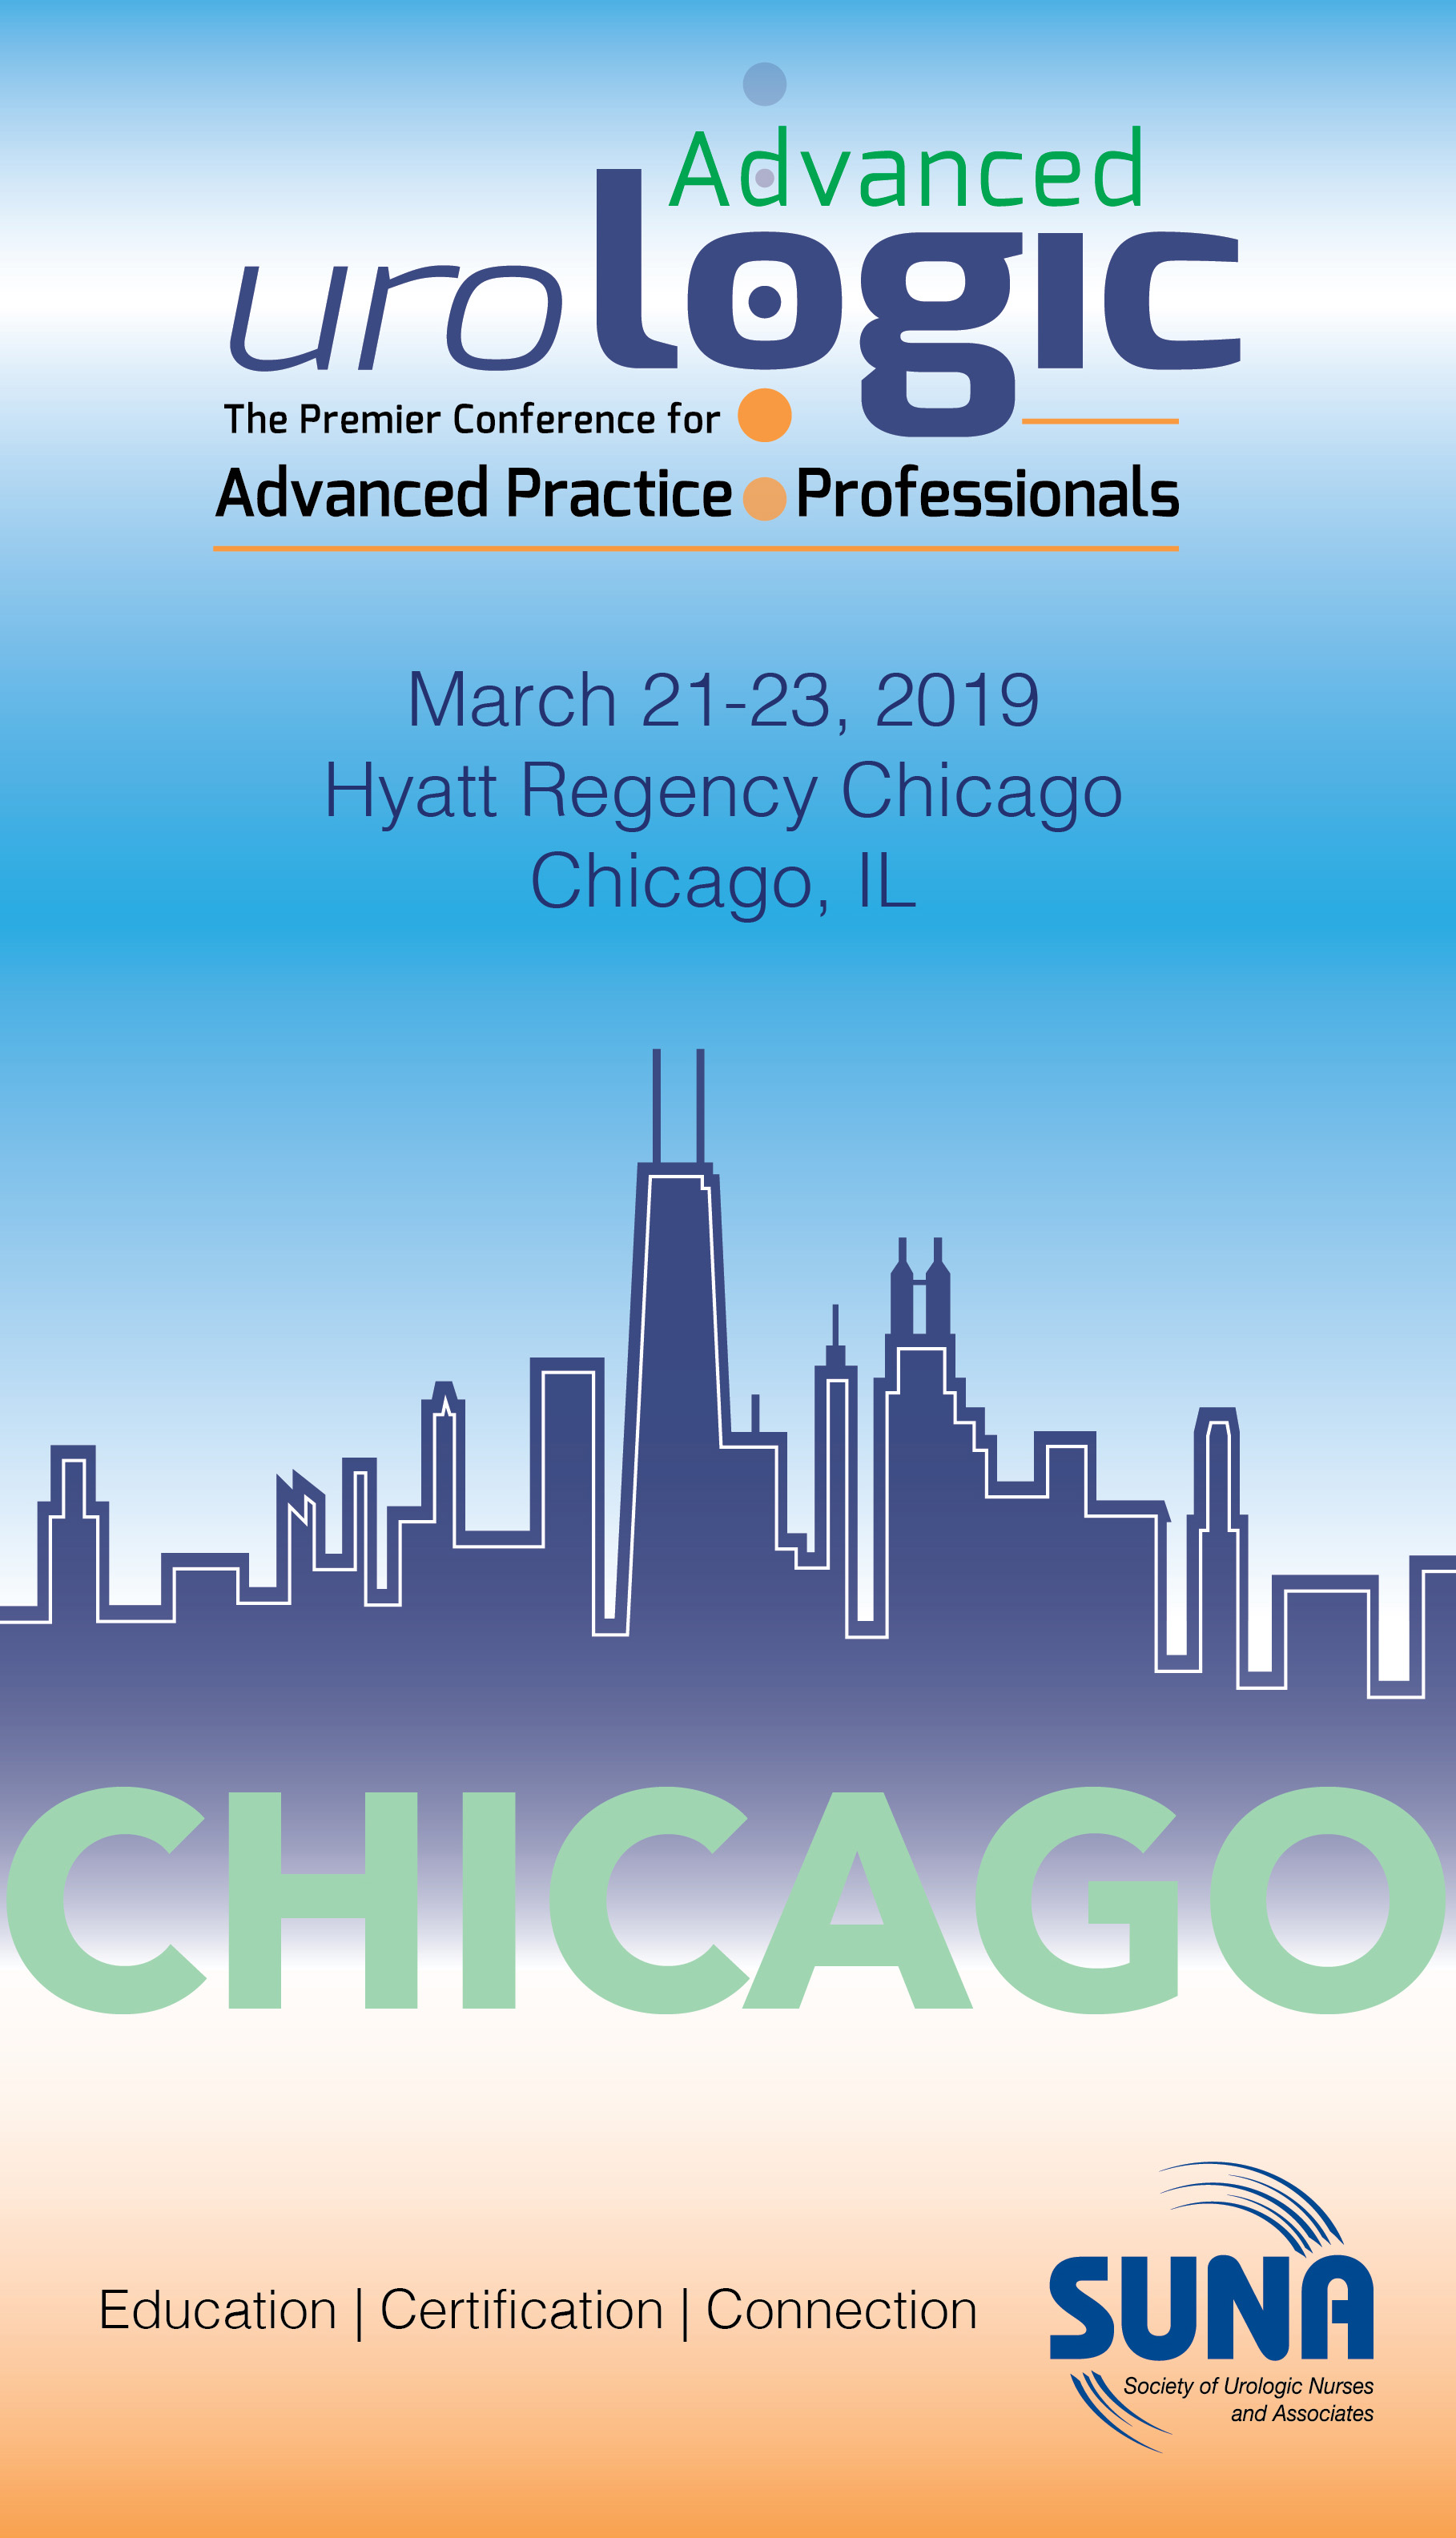 2019 Advanced Practice uroLogic Conference